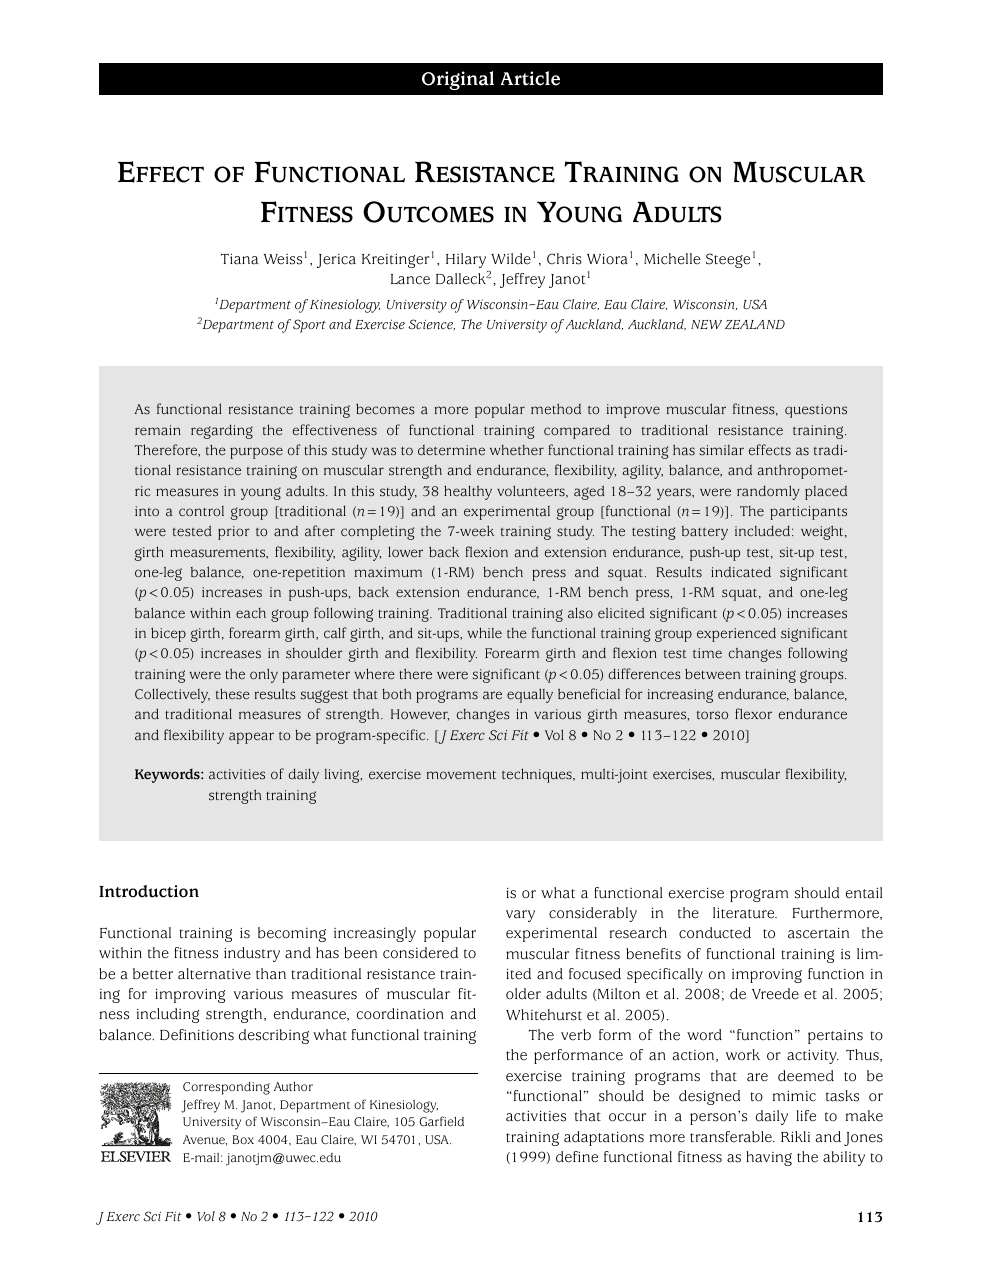 Effect of Functional Resistance Training on Muscular Fitness